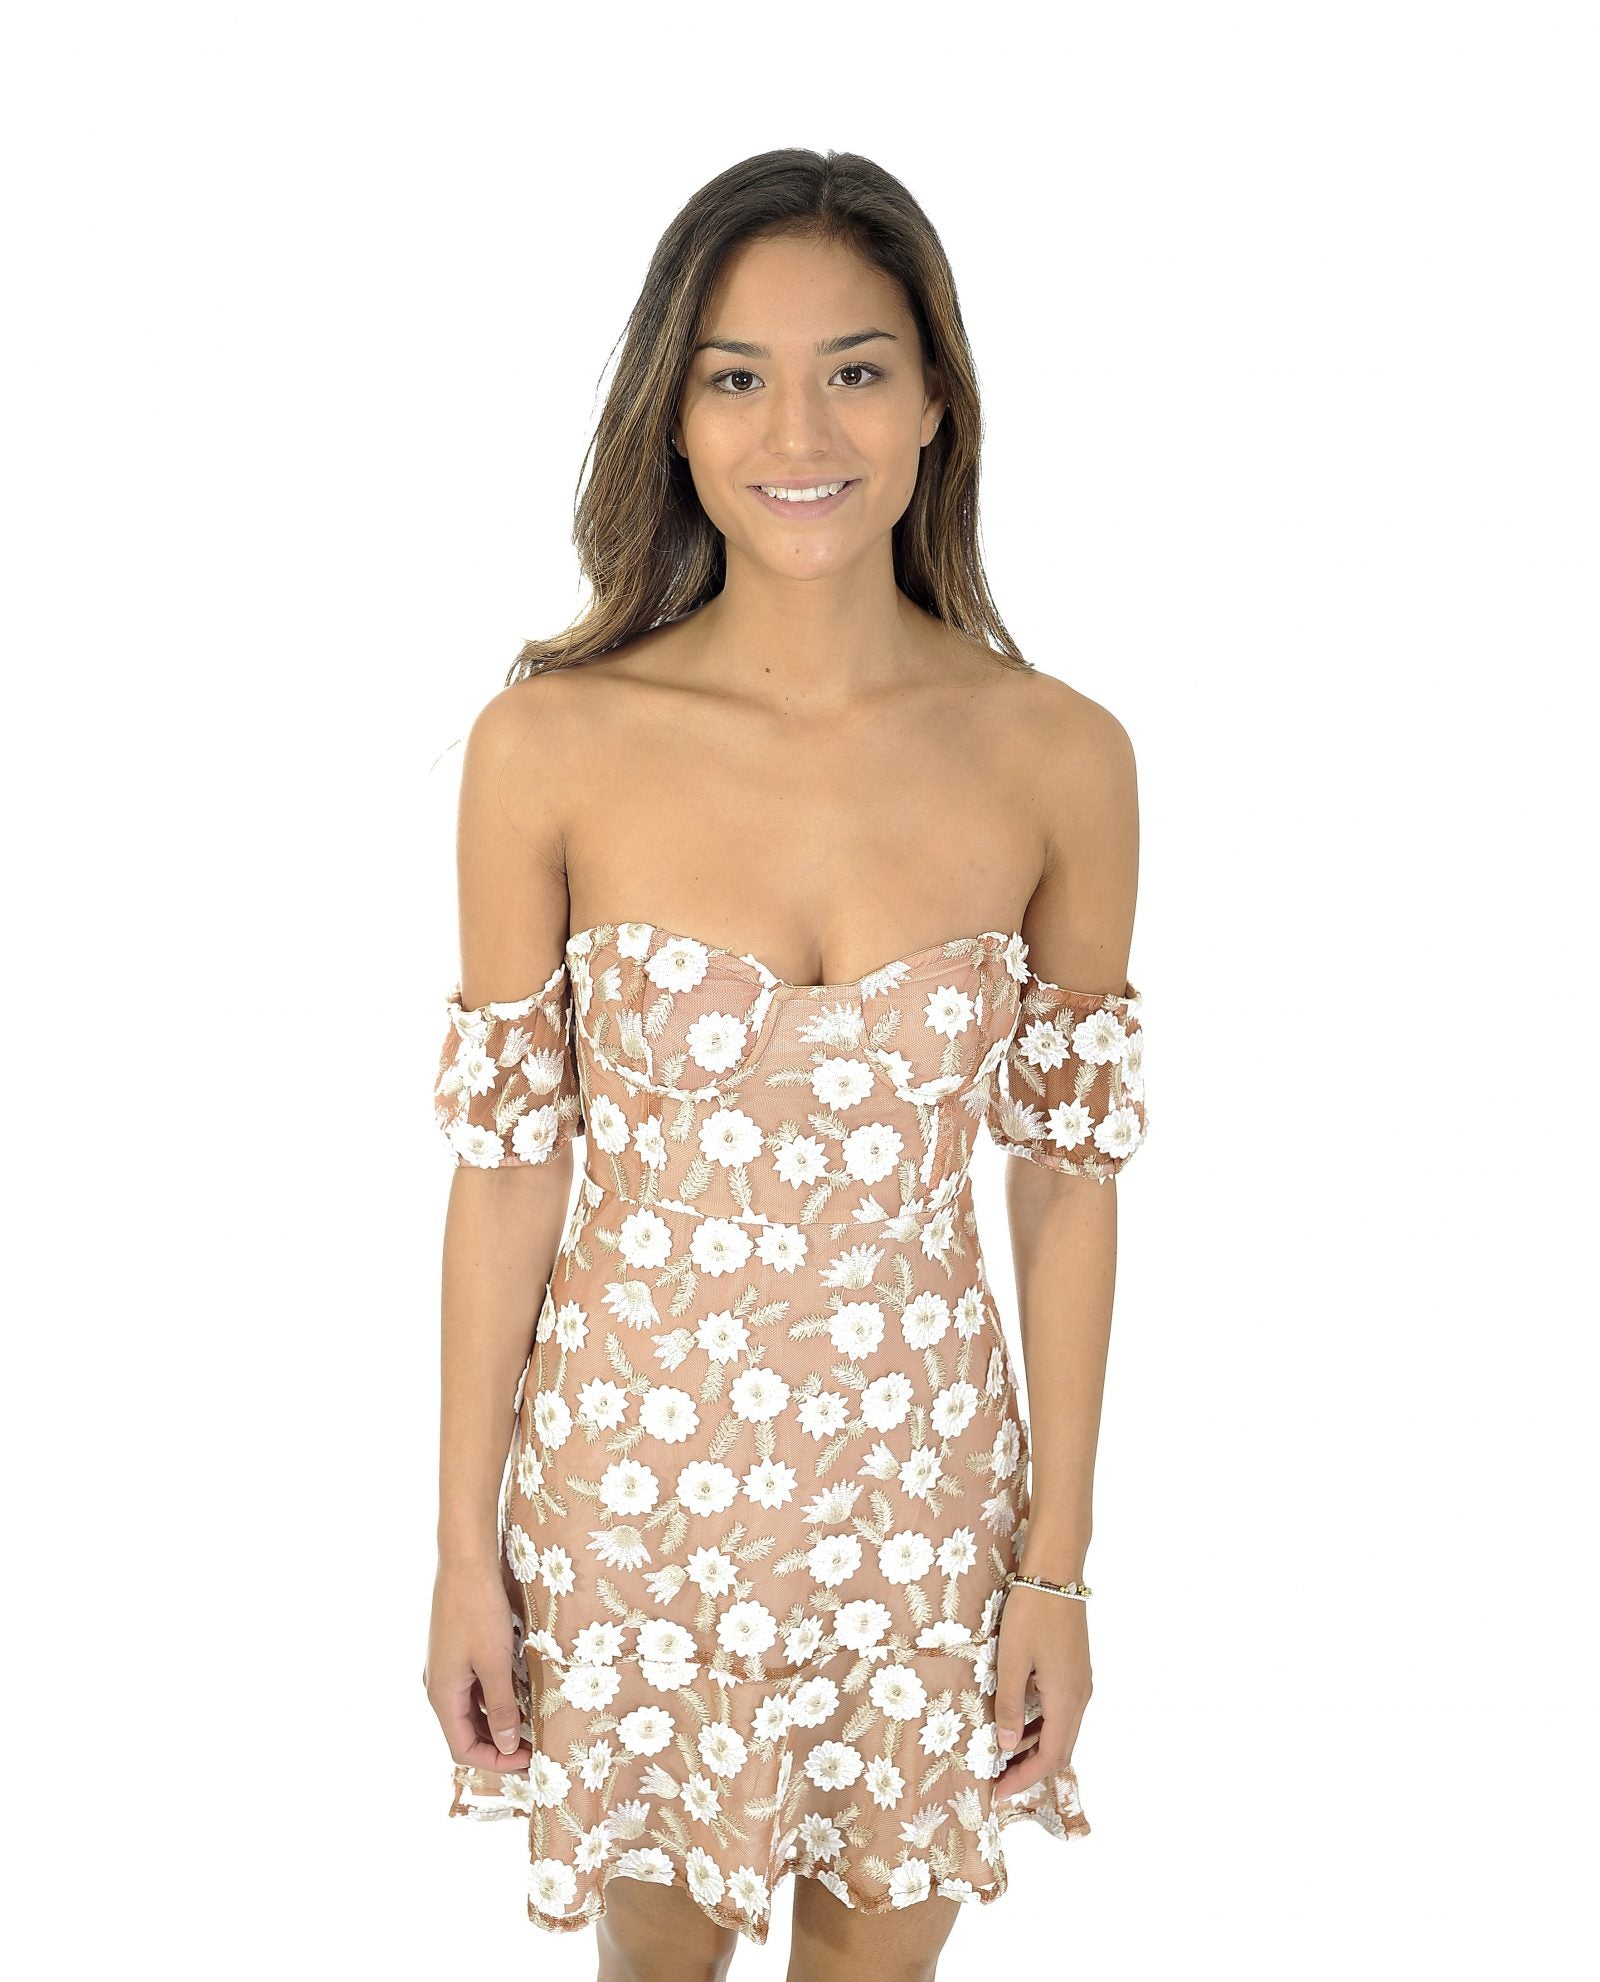 NUDE & WHITE FLORAL BANDEAU DRESS_AAA0372